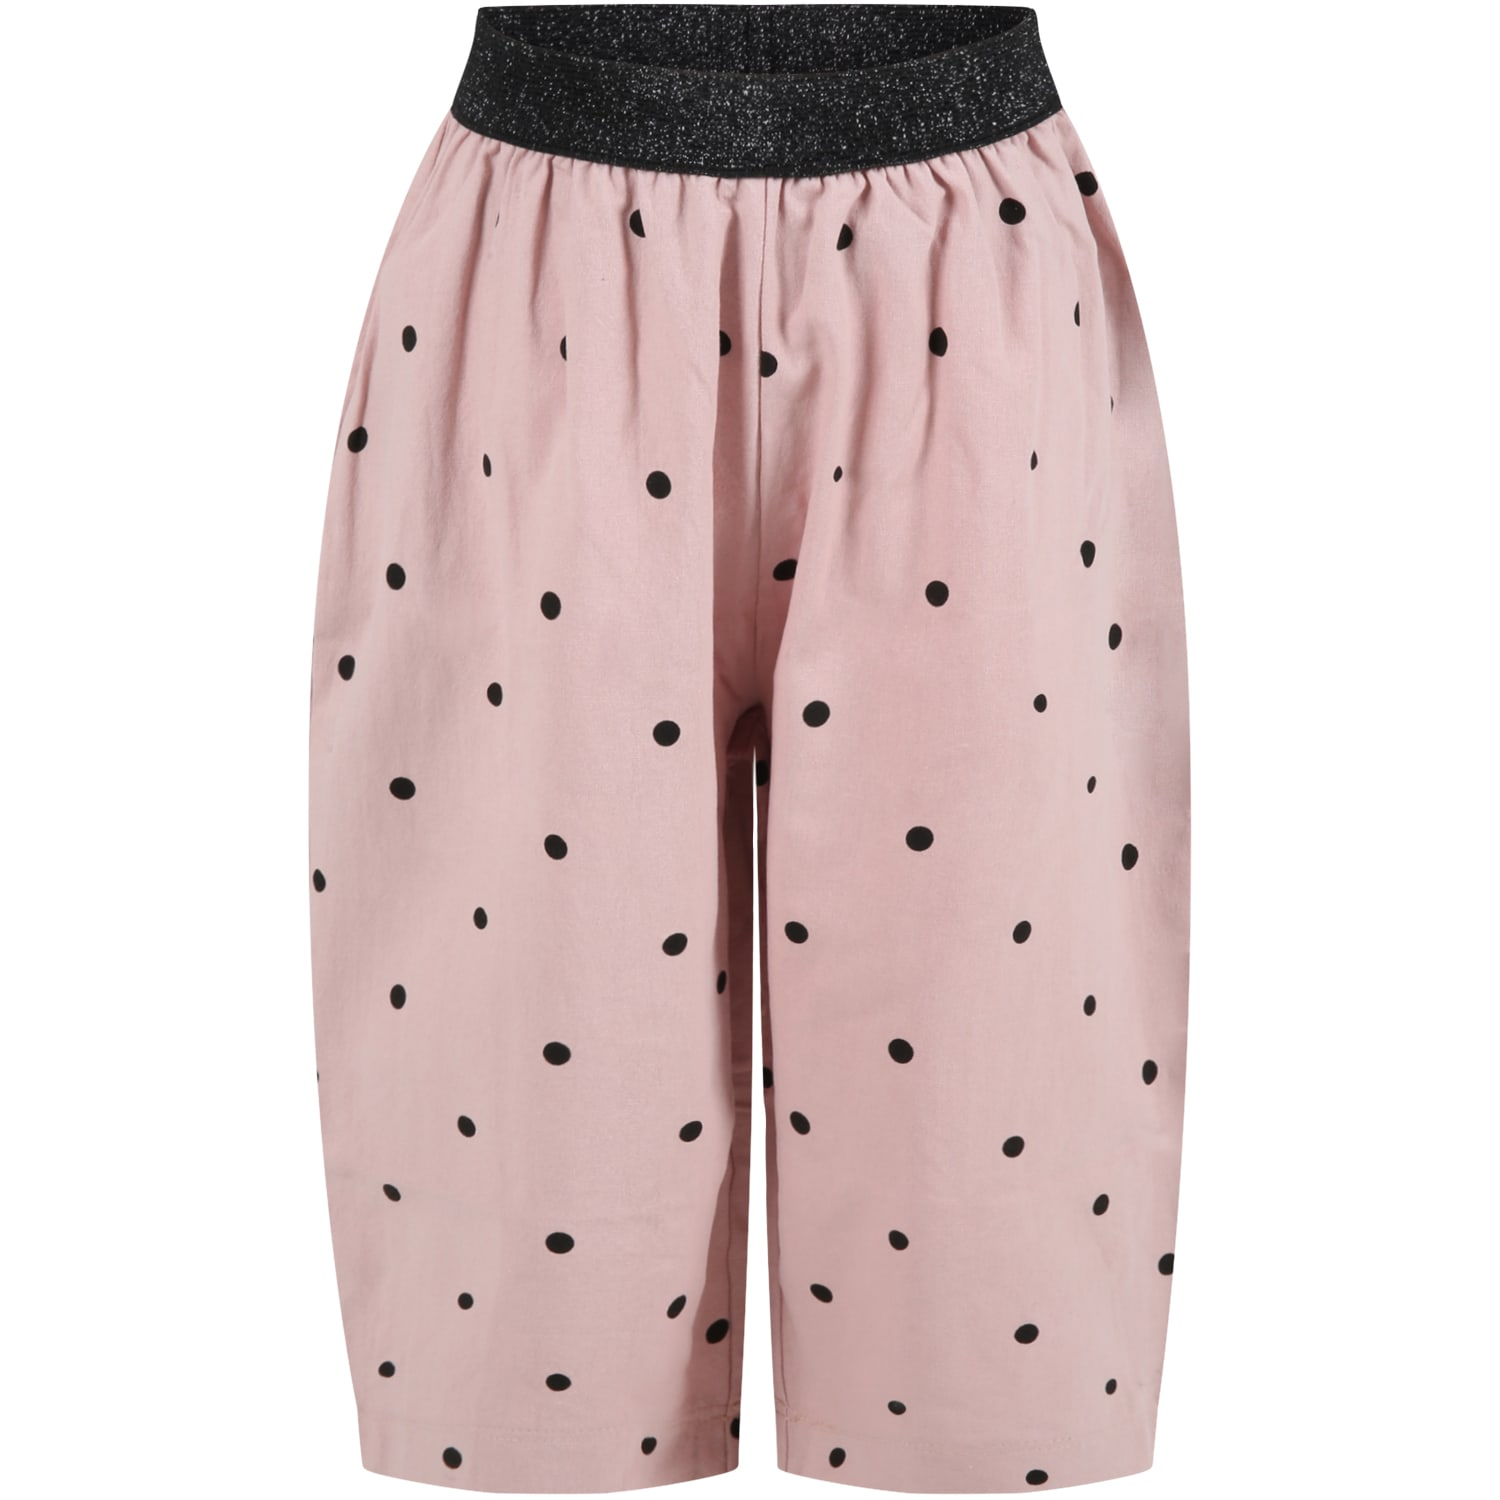 Caffe dOrzo Pink dina Trousers For Girl With Black Polka Dots